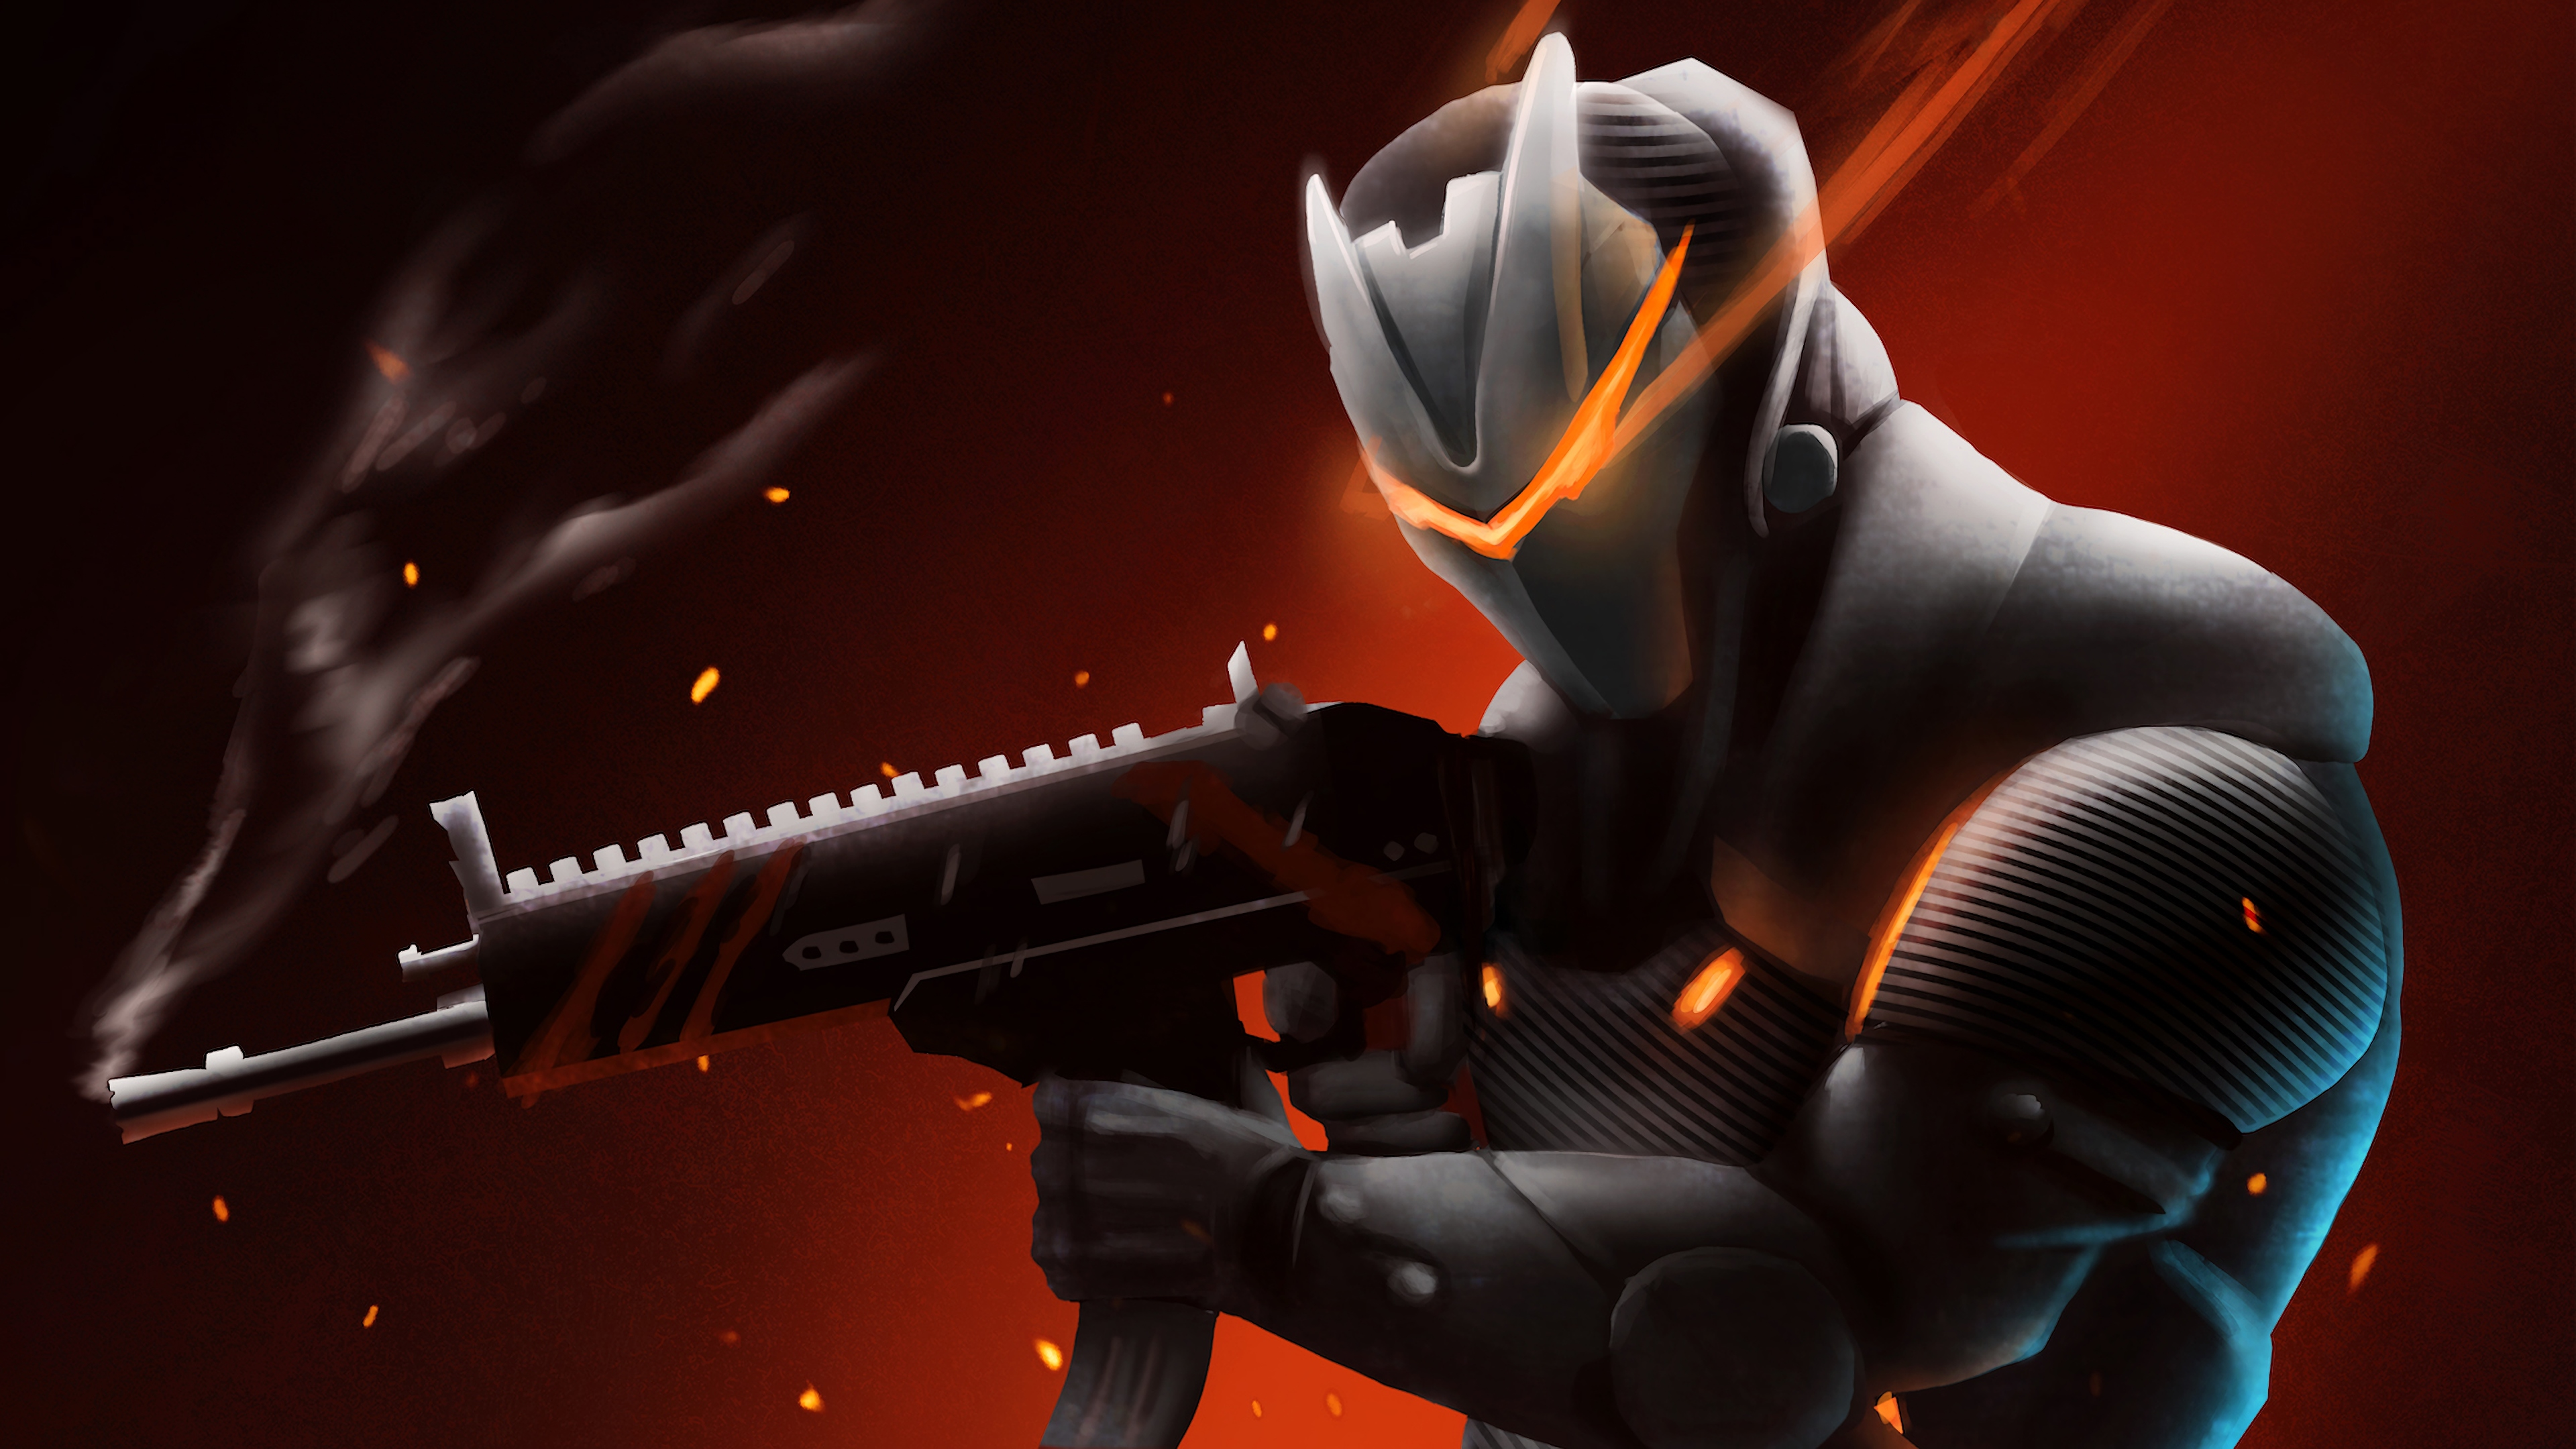 1600x1200 omega with rifle fortnite battle royale - 4k fortnite wallpaper ...